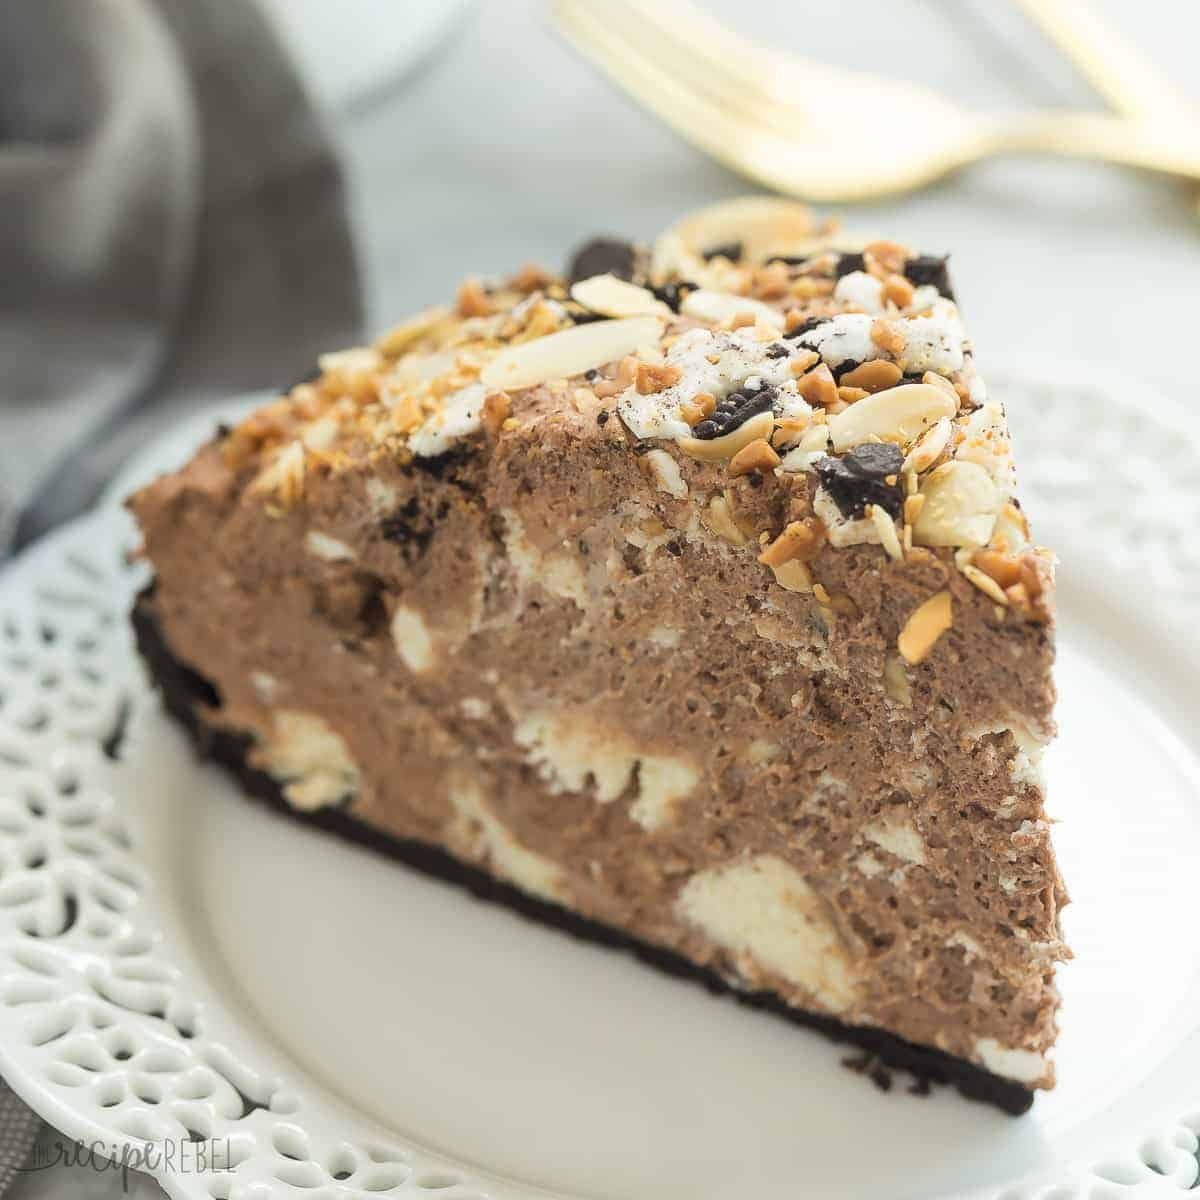 Sometimes you just need a mountain of chocolate! This Chocolate Explosion has rich chocolate mousse piled high on an Oreo crust, filled with chunks of vanilla cheesecake, Oreos, nuts, toffee bits -- truly indulgent!